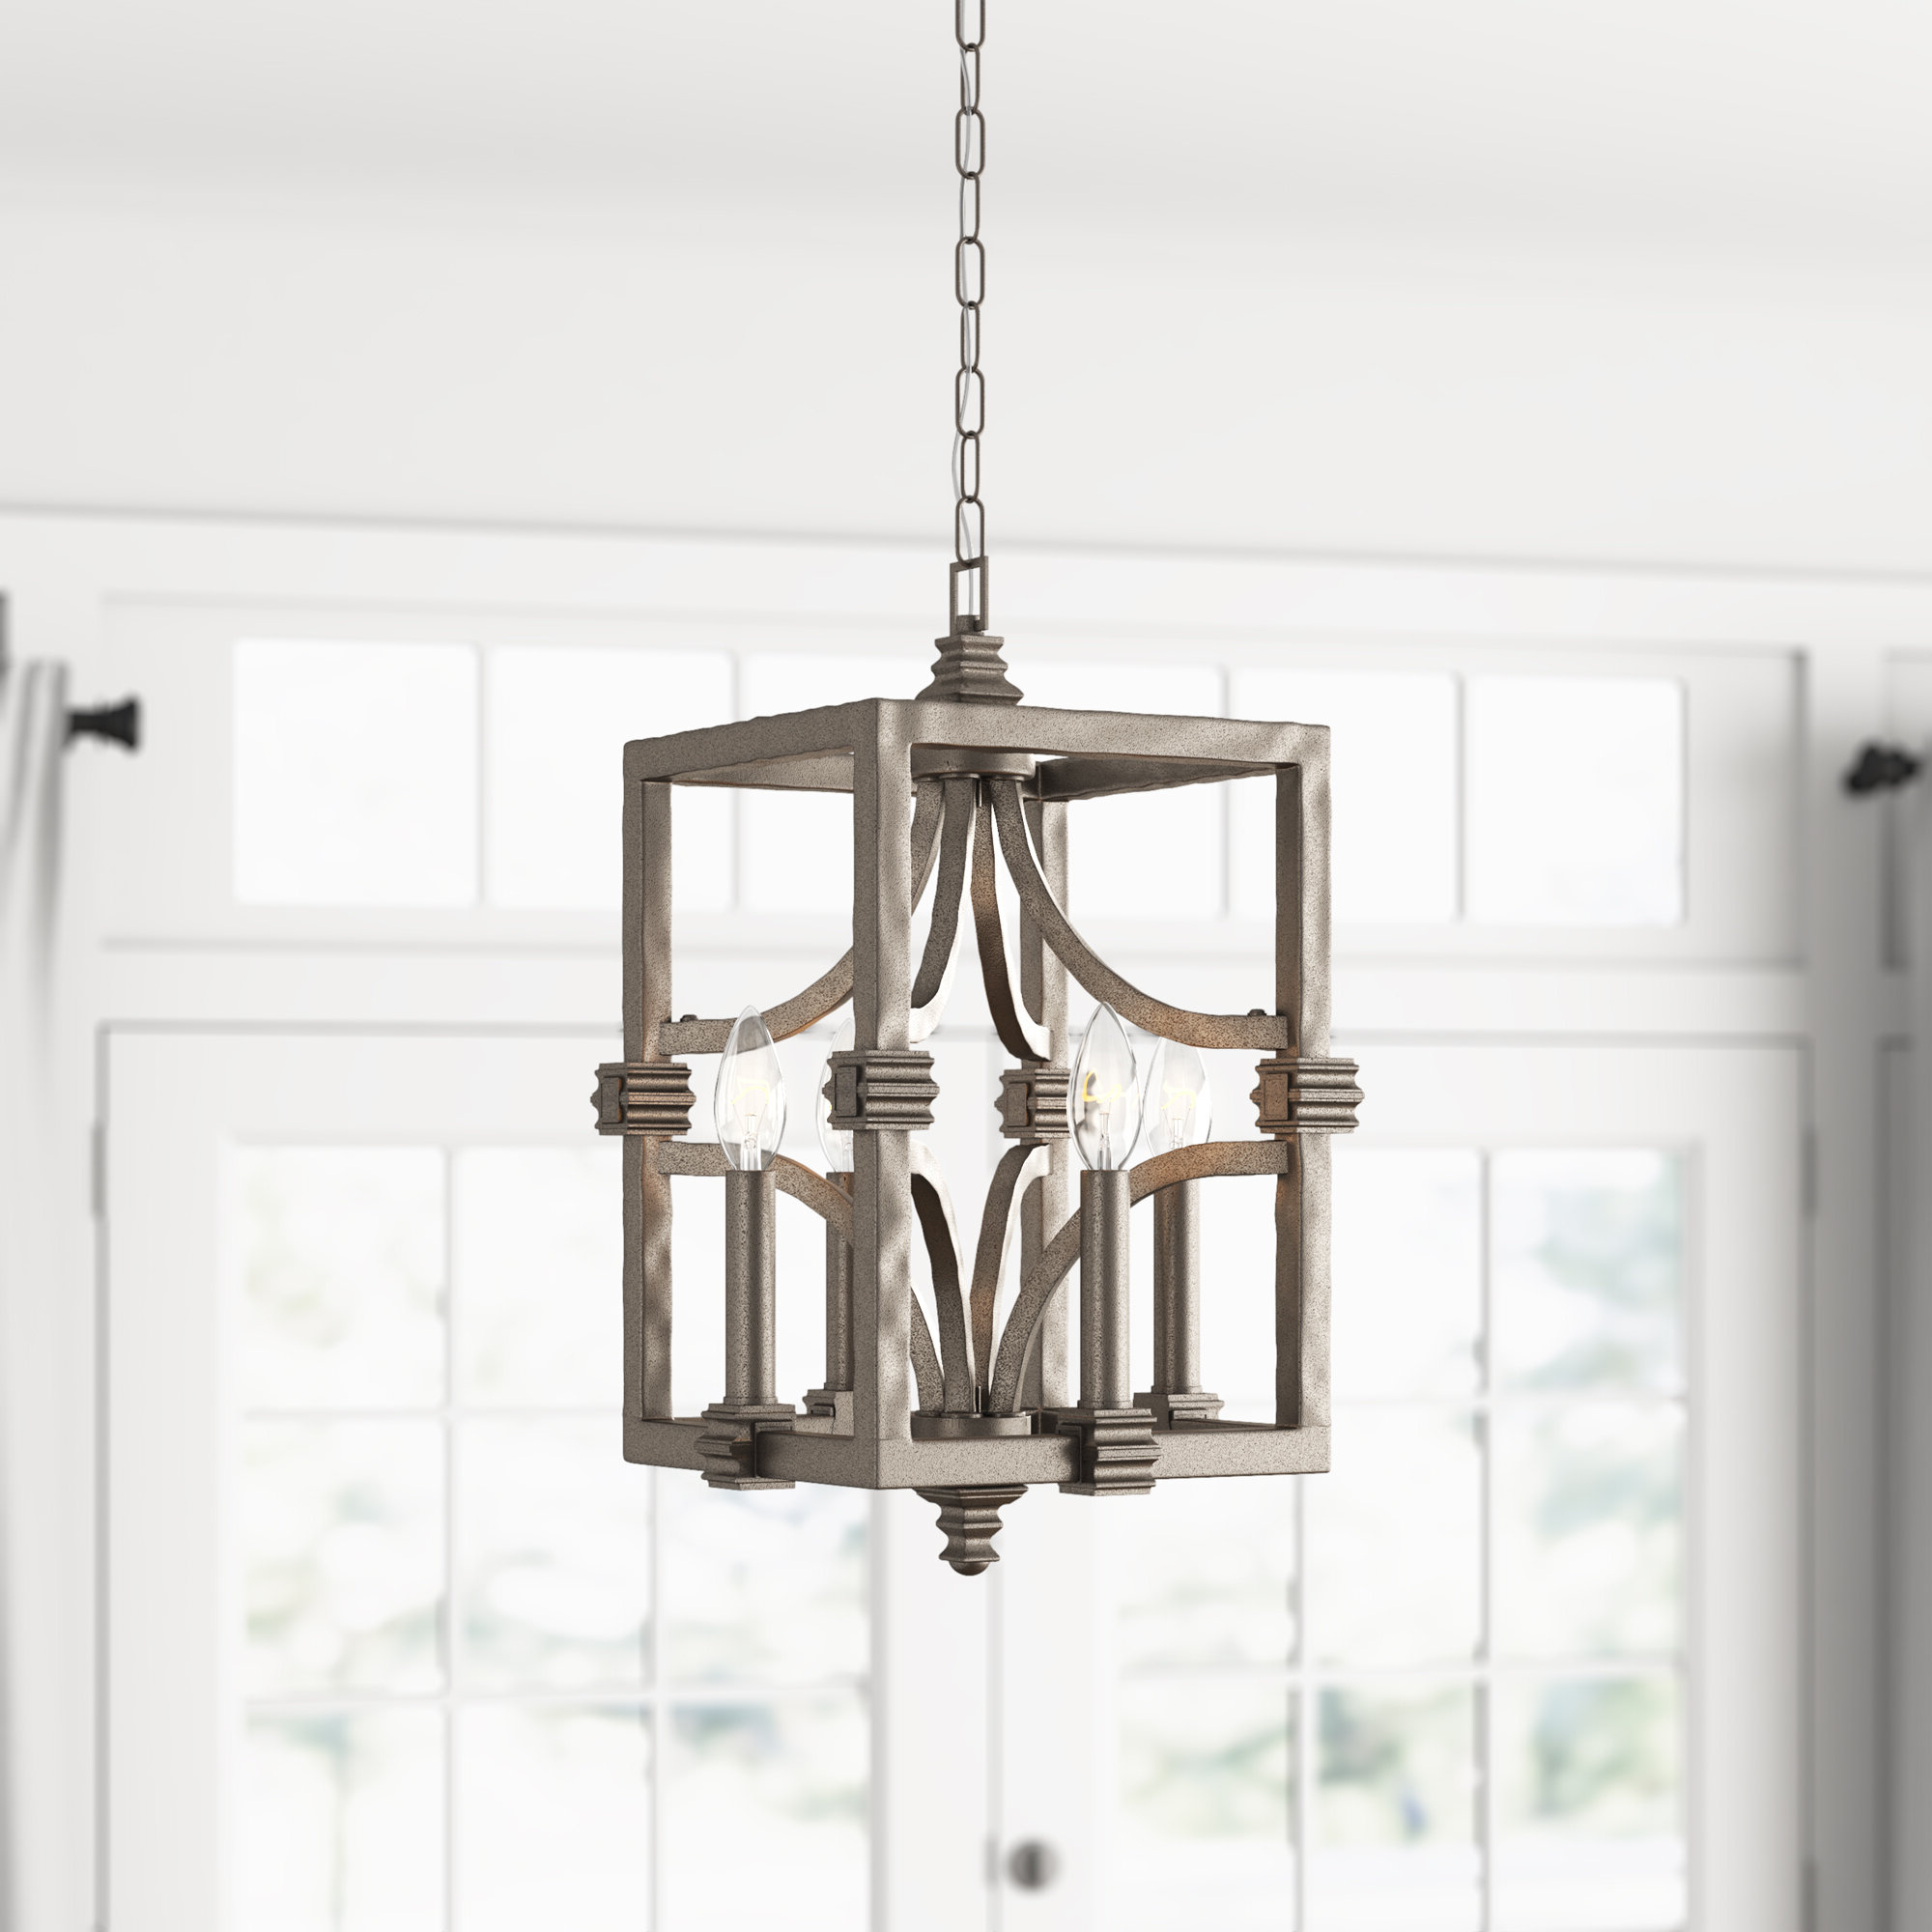 William 4 Light Lantern Square / Rectangle Pendants Within Most Popular Freeburg 4 Light Lantern Square / Rectangle Pendant (Gallery 2 of 20)